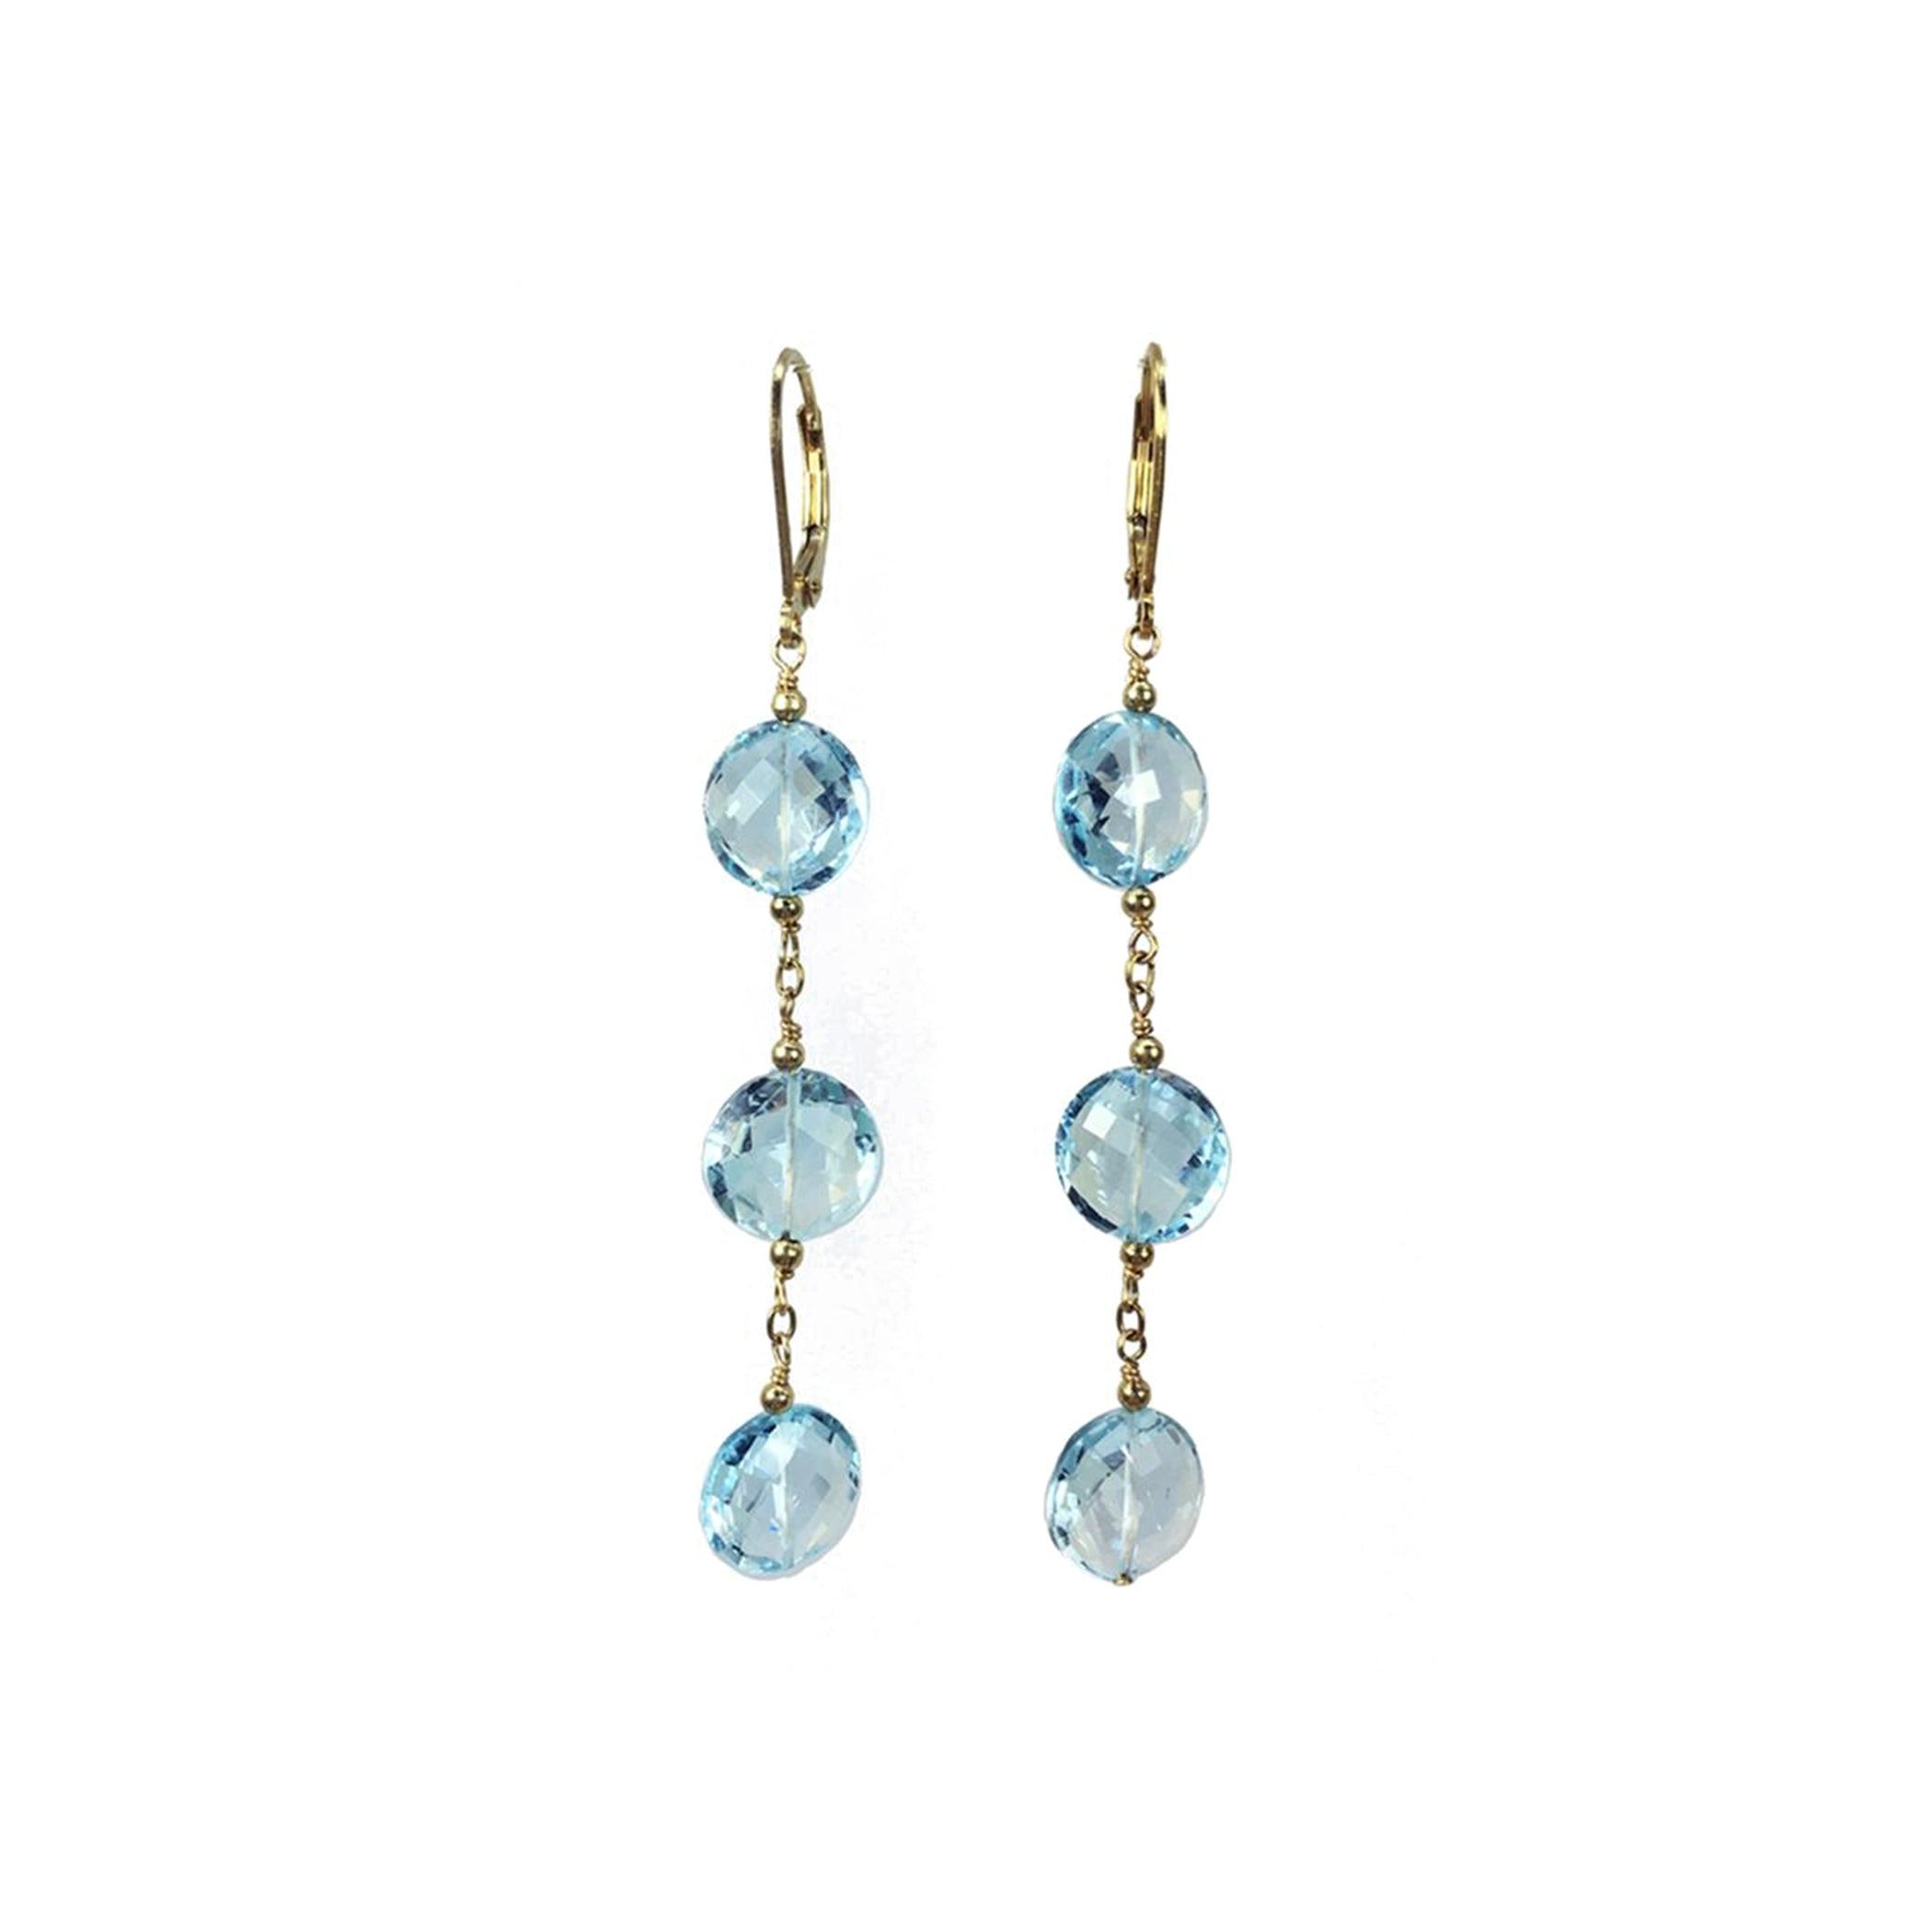 Swiss Blue Topaz Coin earrings